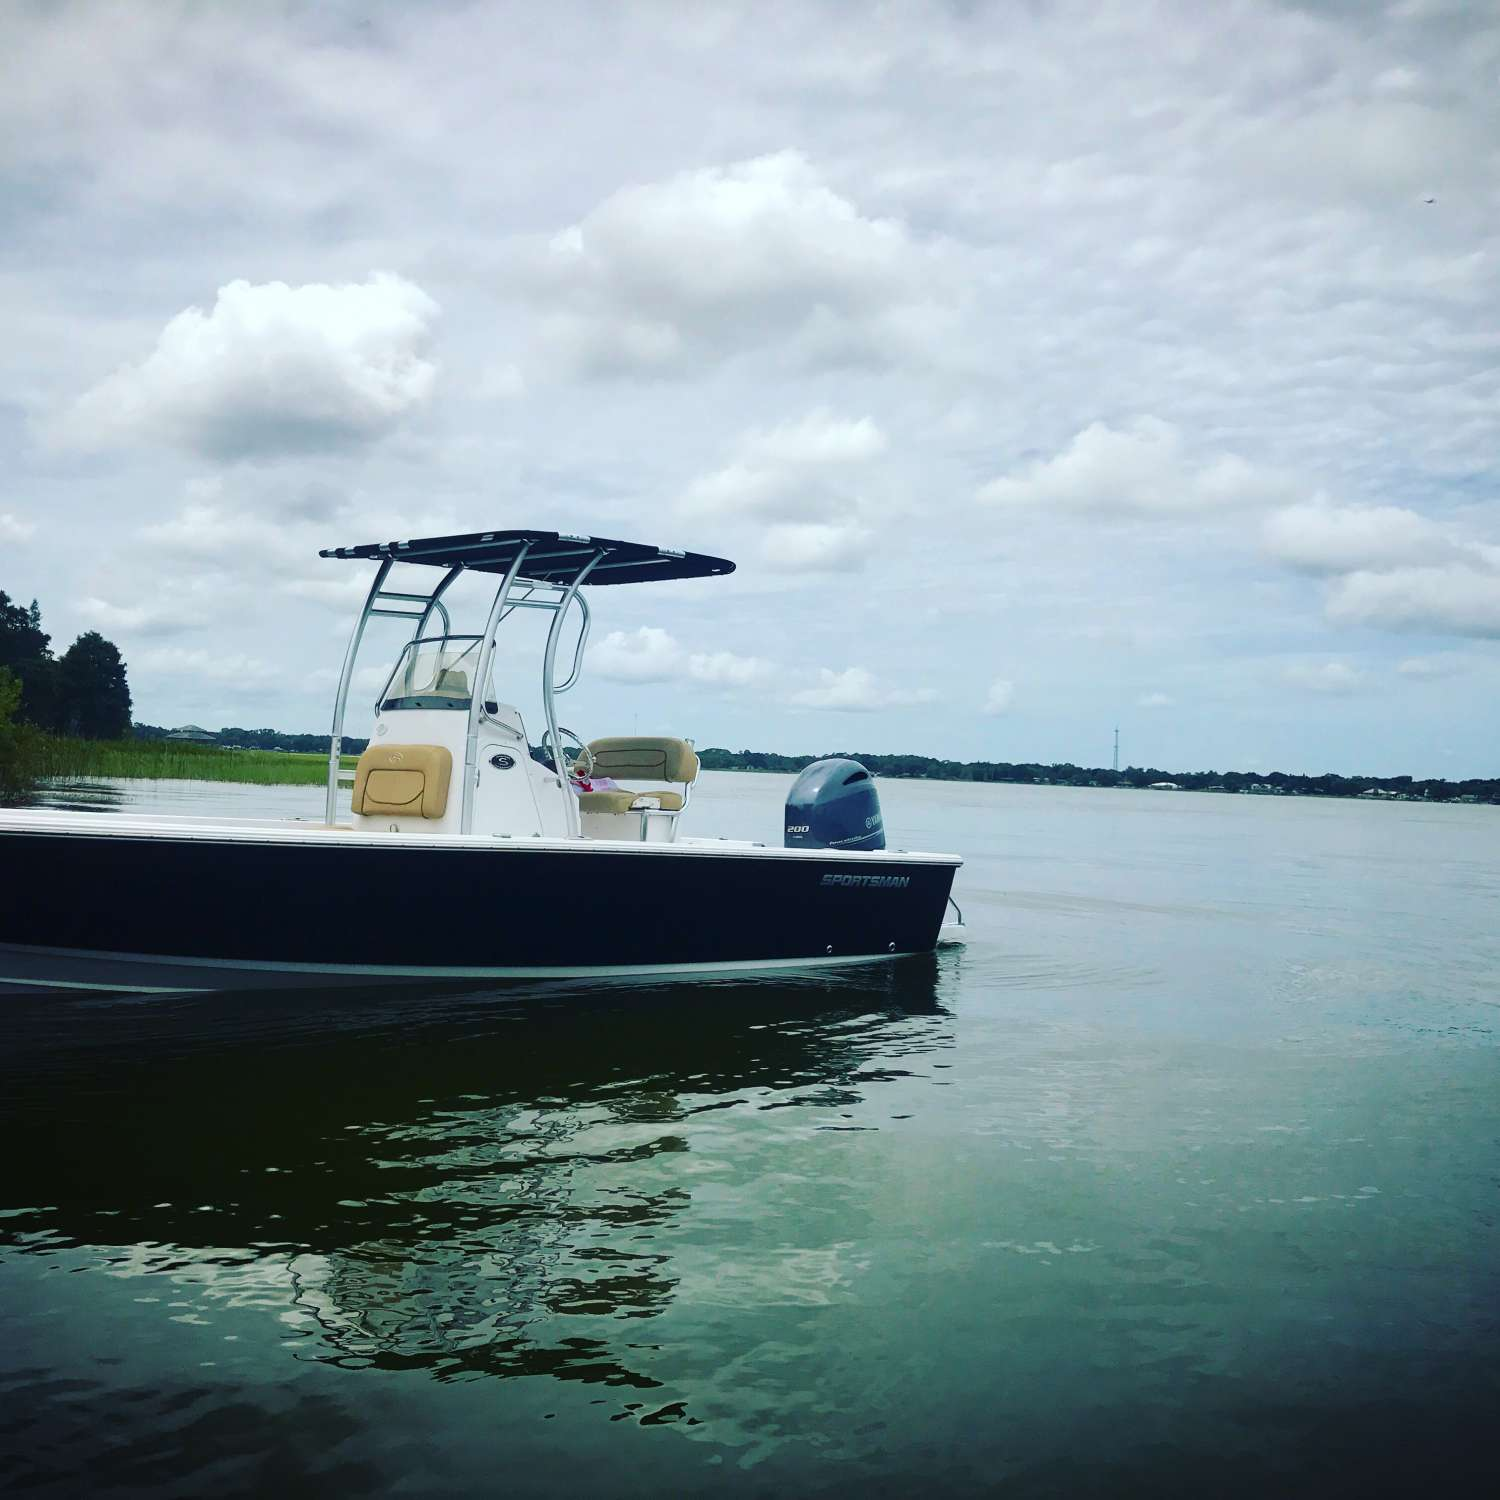 Title: Sportsman 227 - On board their Sportsman Masters 227 Bay Boat - Location: Lakeland, Florida. Participating in the Photo Contest #SportsmanSeptember2017